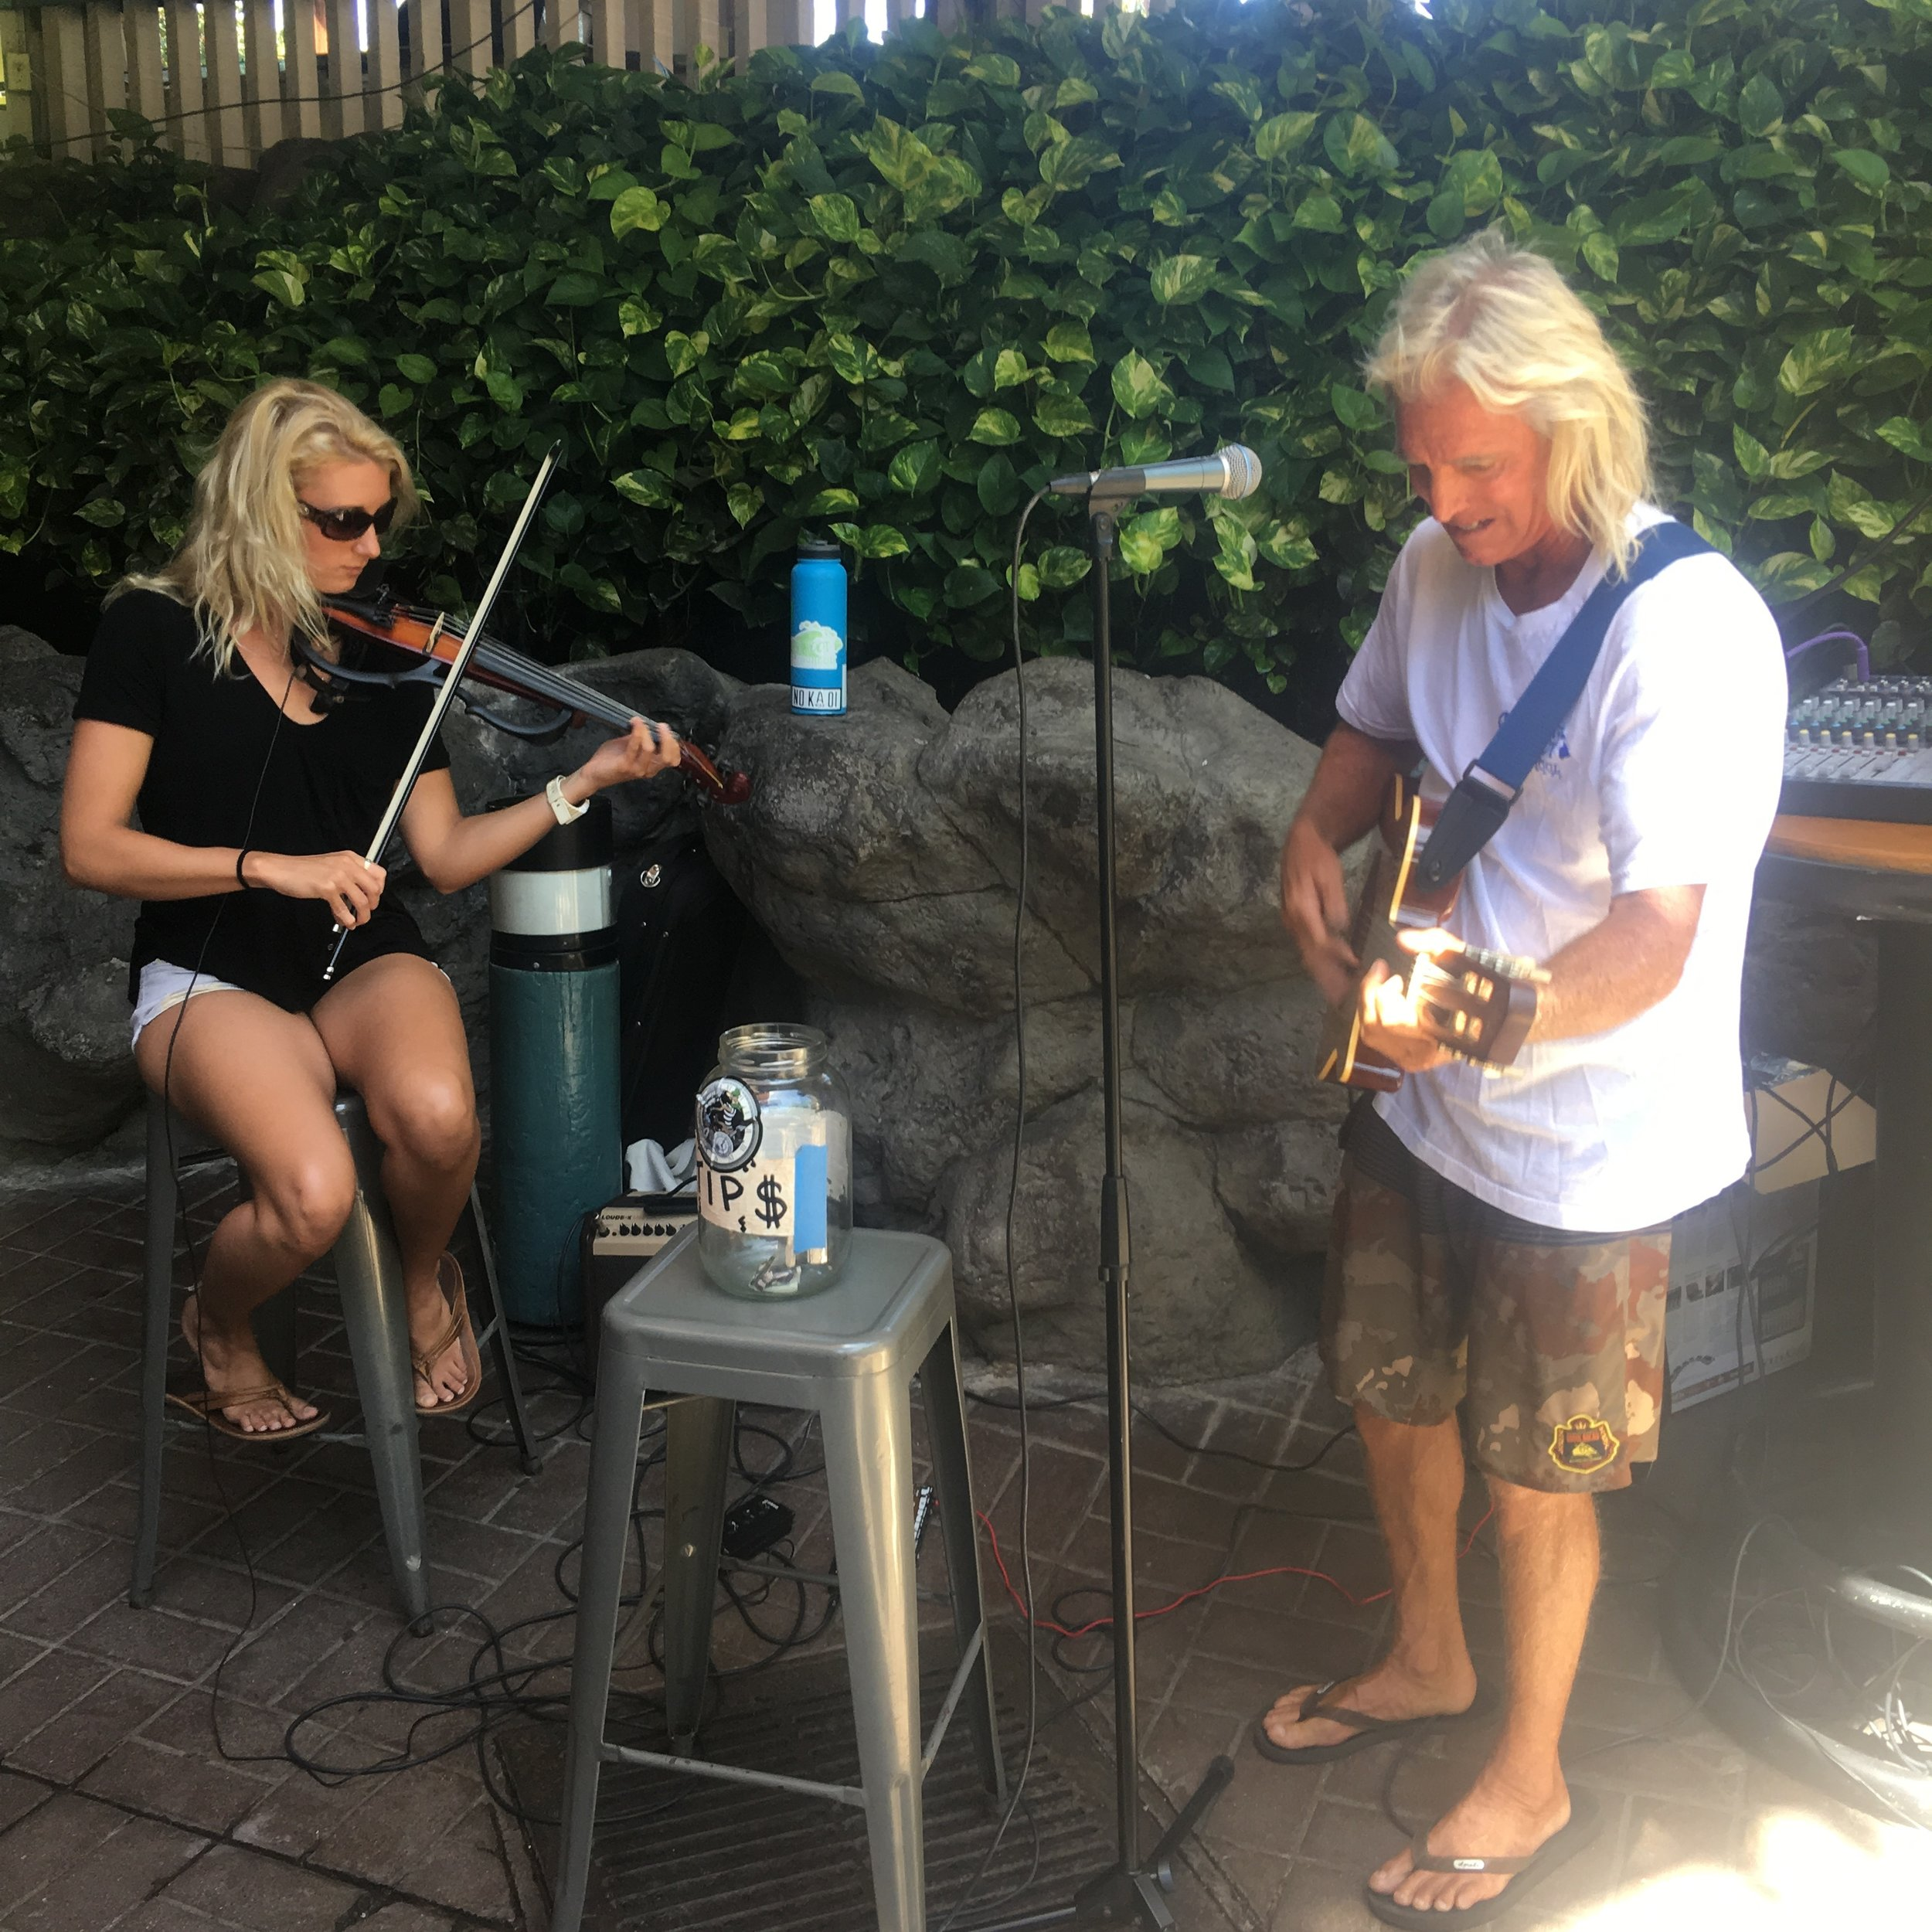 Kendell & Armadillo perform every Saturday from 10:30am-12:30pm